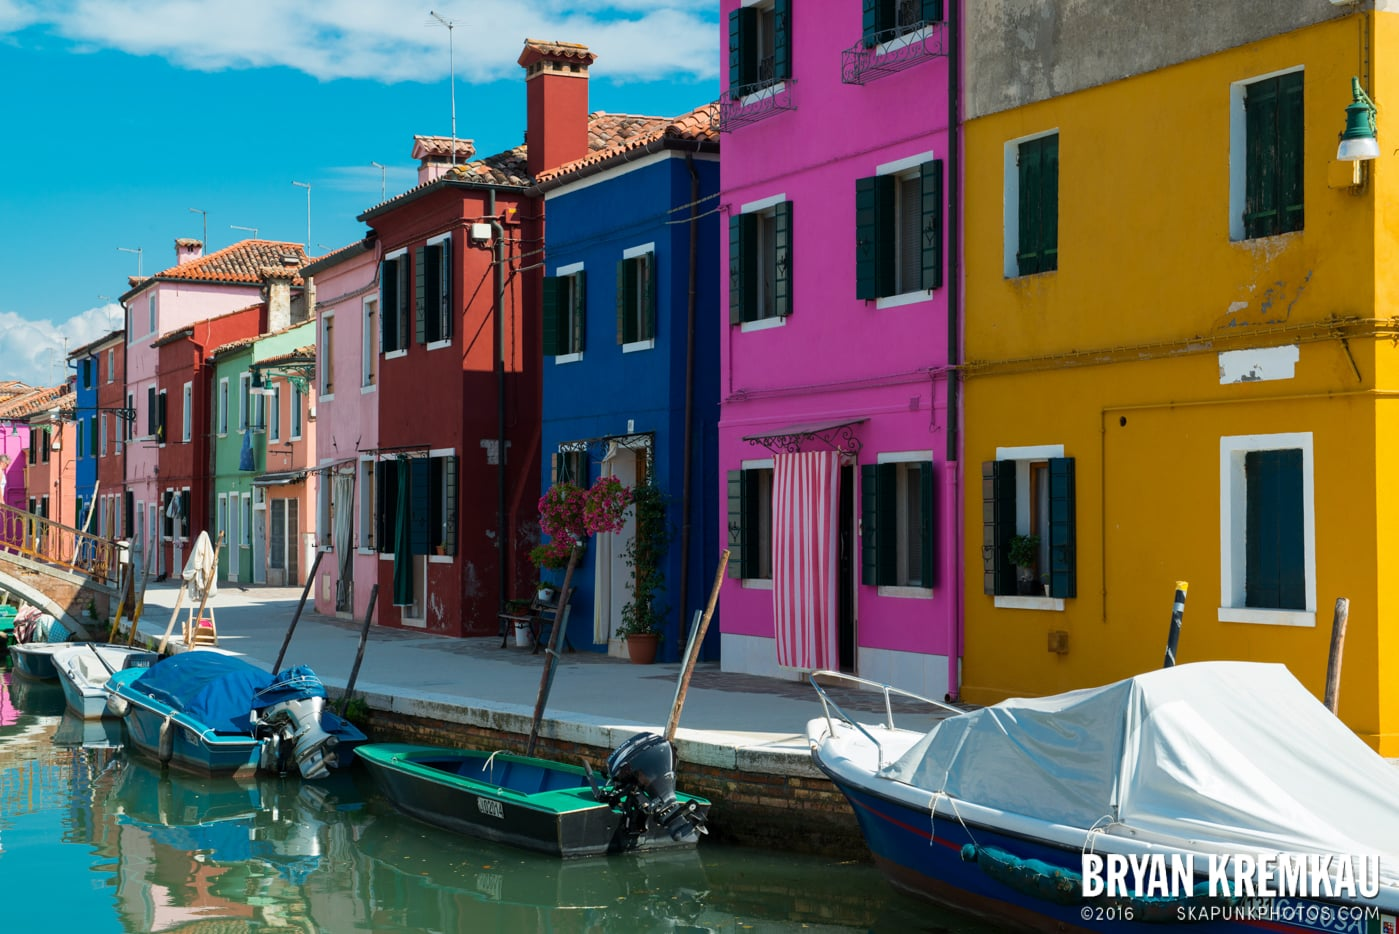 Italy Vacation - Day 6: Murano, Burano, Venice - 9.14.13 (59)